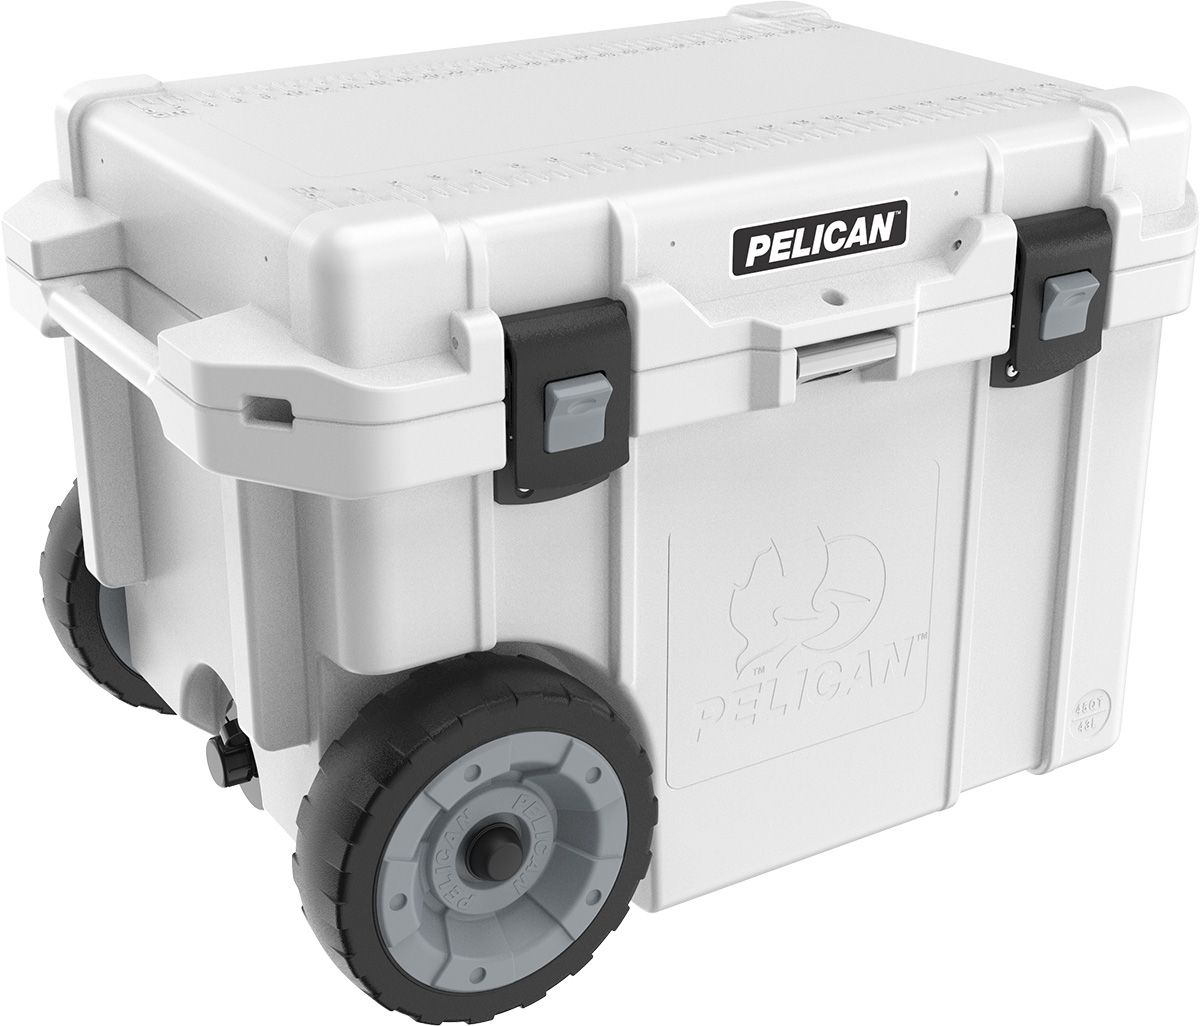 45qw Elite Wheeled Cooler In 2020 Cooler With Wheels Pelican Elite Cooler Pelican Cooler